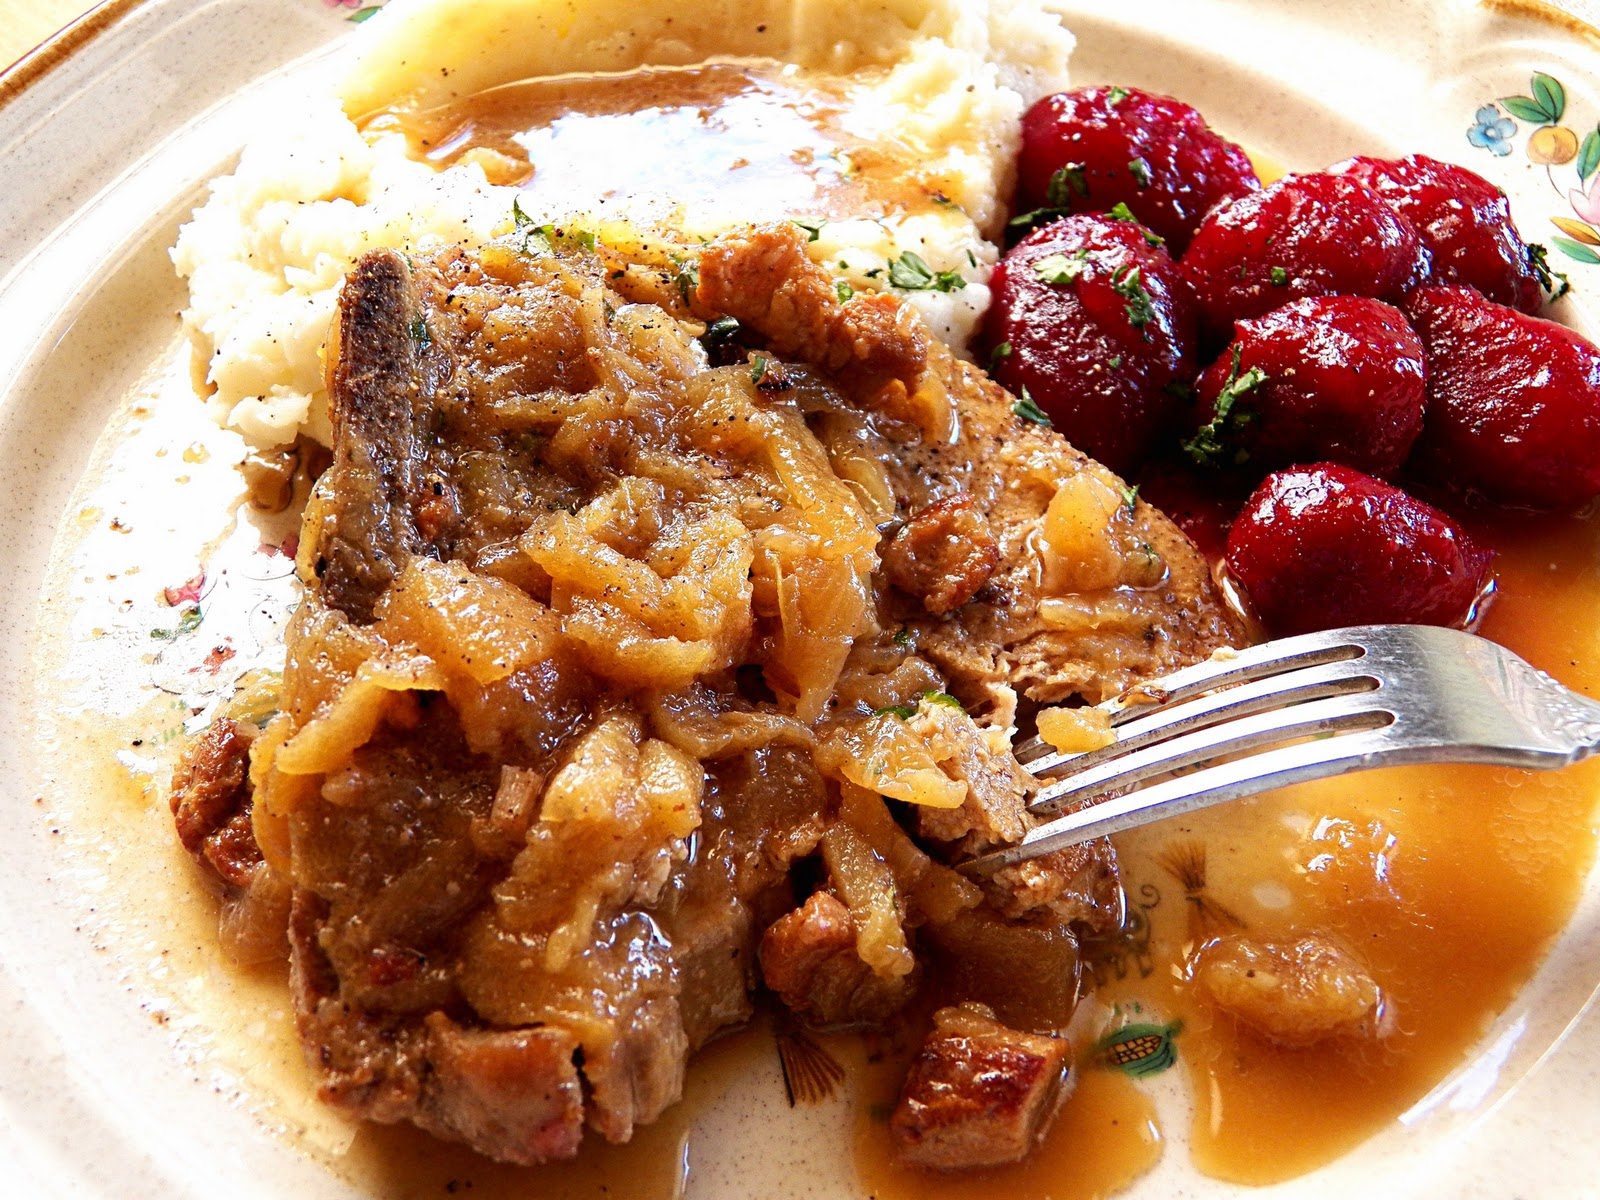 Comfy Cuisine: Apple & Onion Beer Braised Pork Chops